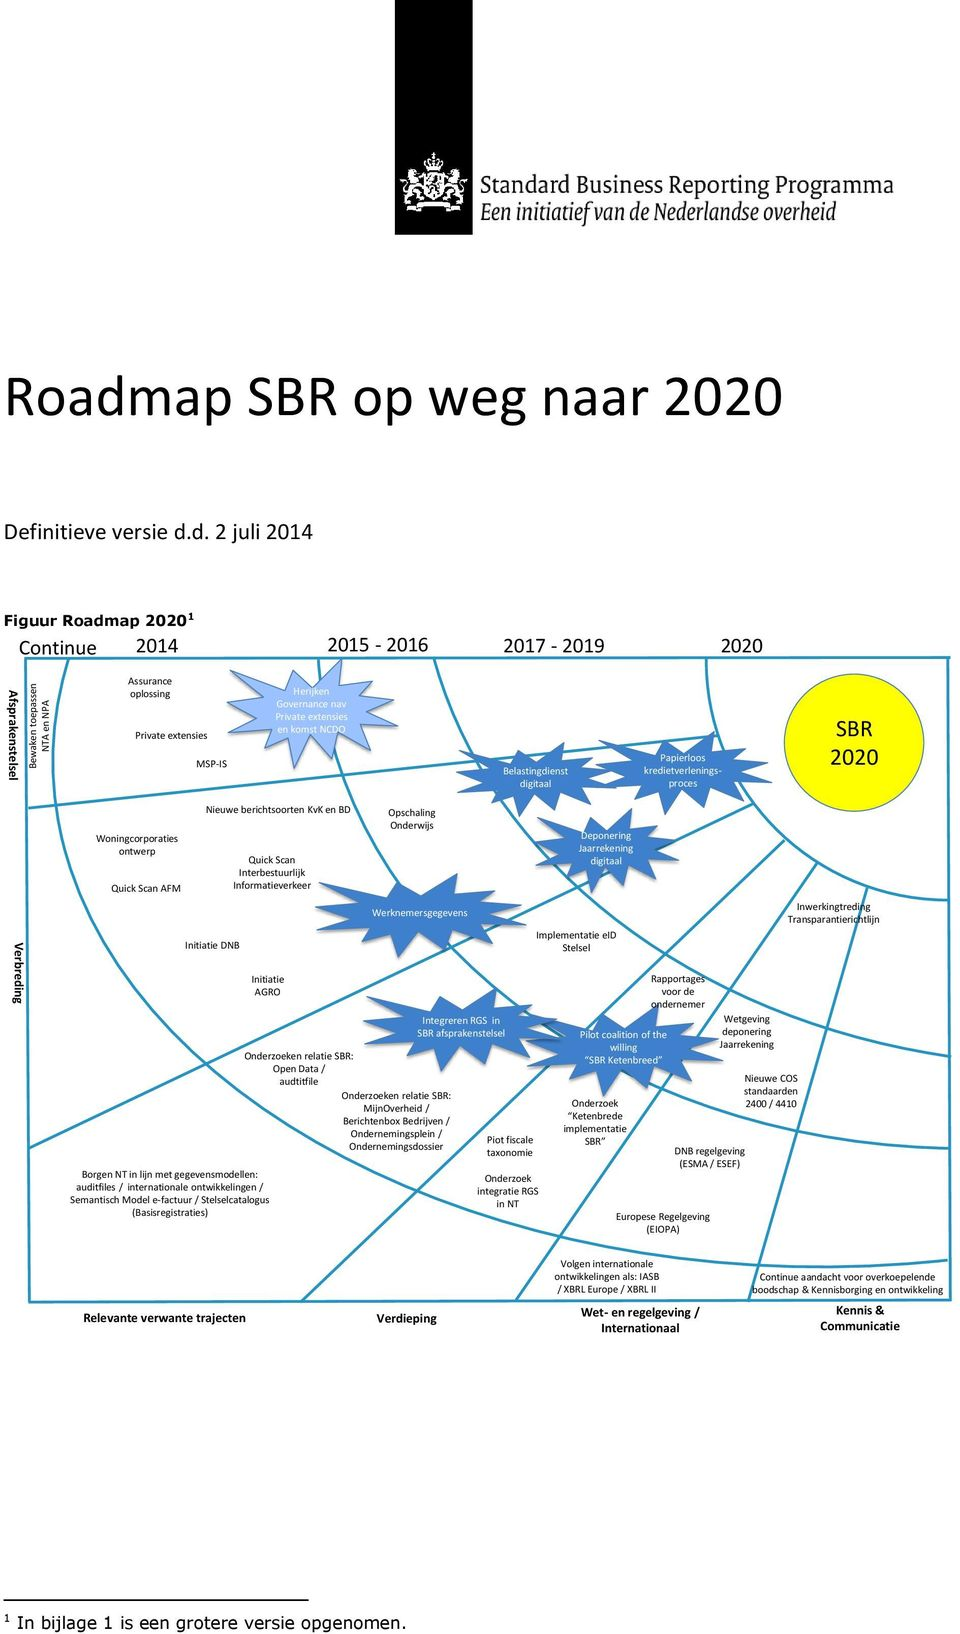 d. 2 juli 2014 Figuur Roadmap 2020 1 Continue 2014 2015-2016 2017-2019 2020 Afsprakenstelsel Assurance oplossing Private extensies MSP-IS Herijken Governance nav Private extensies en komst NCDO